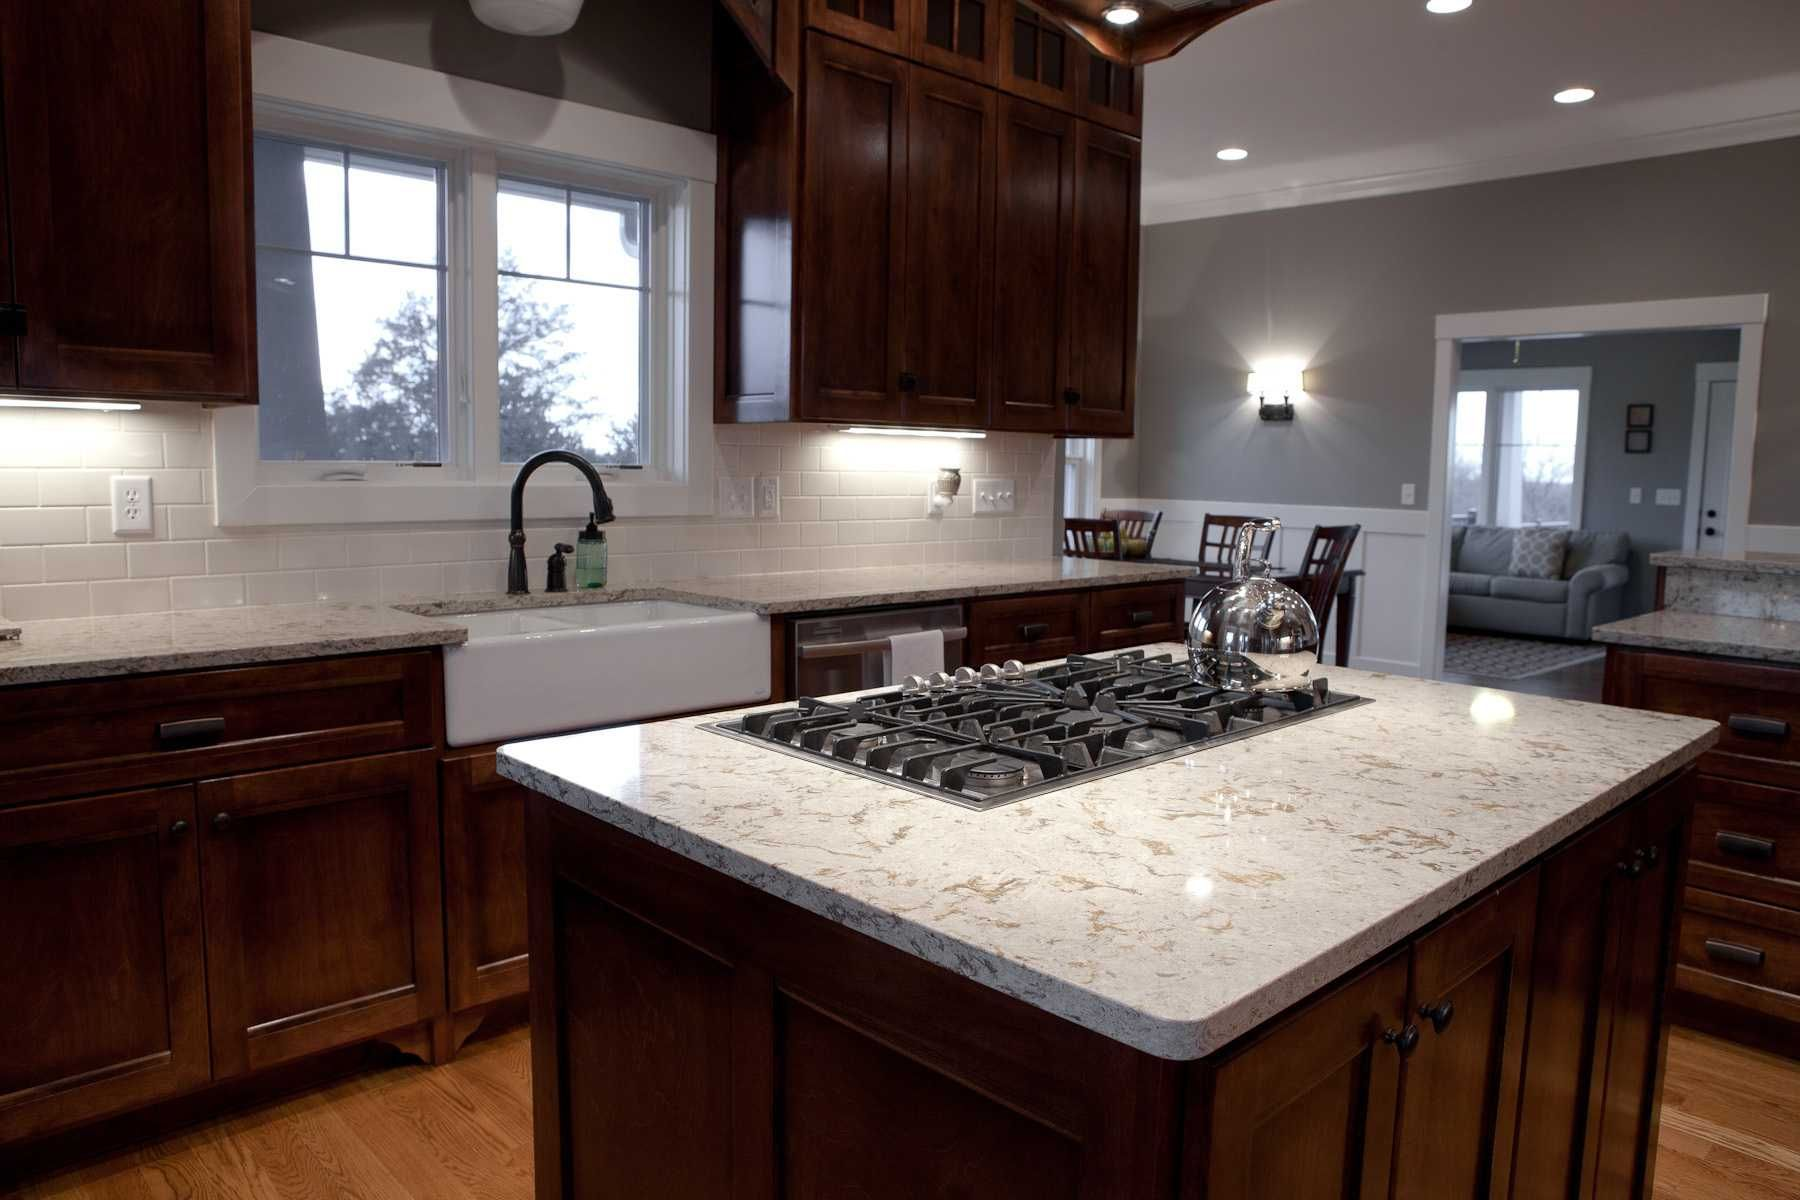 Astonishing Kitchen Island With Sink And Stove Kitchen Center Island Kitchen Island With Sink Sink In Island